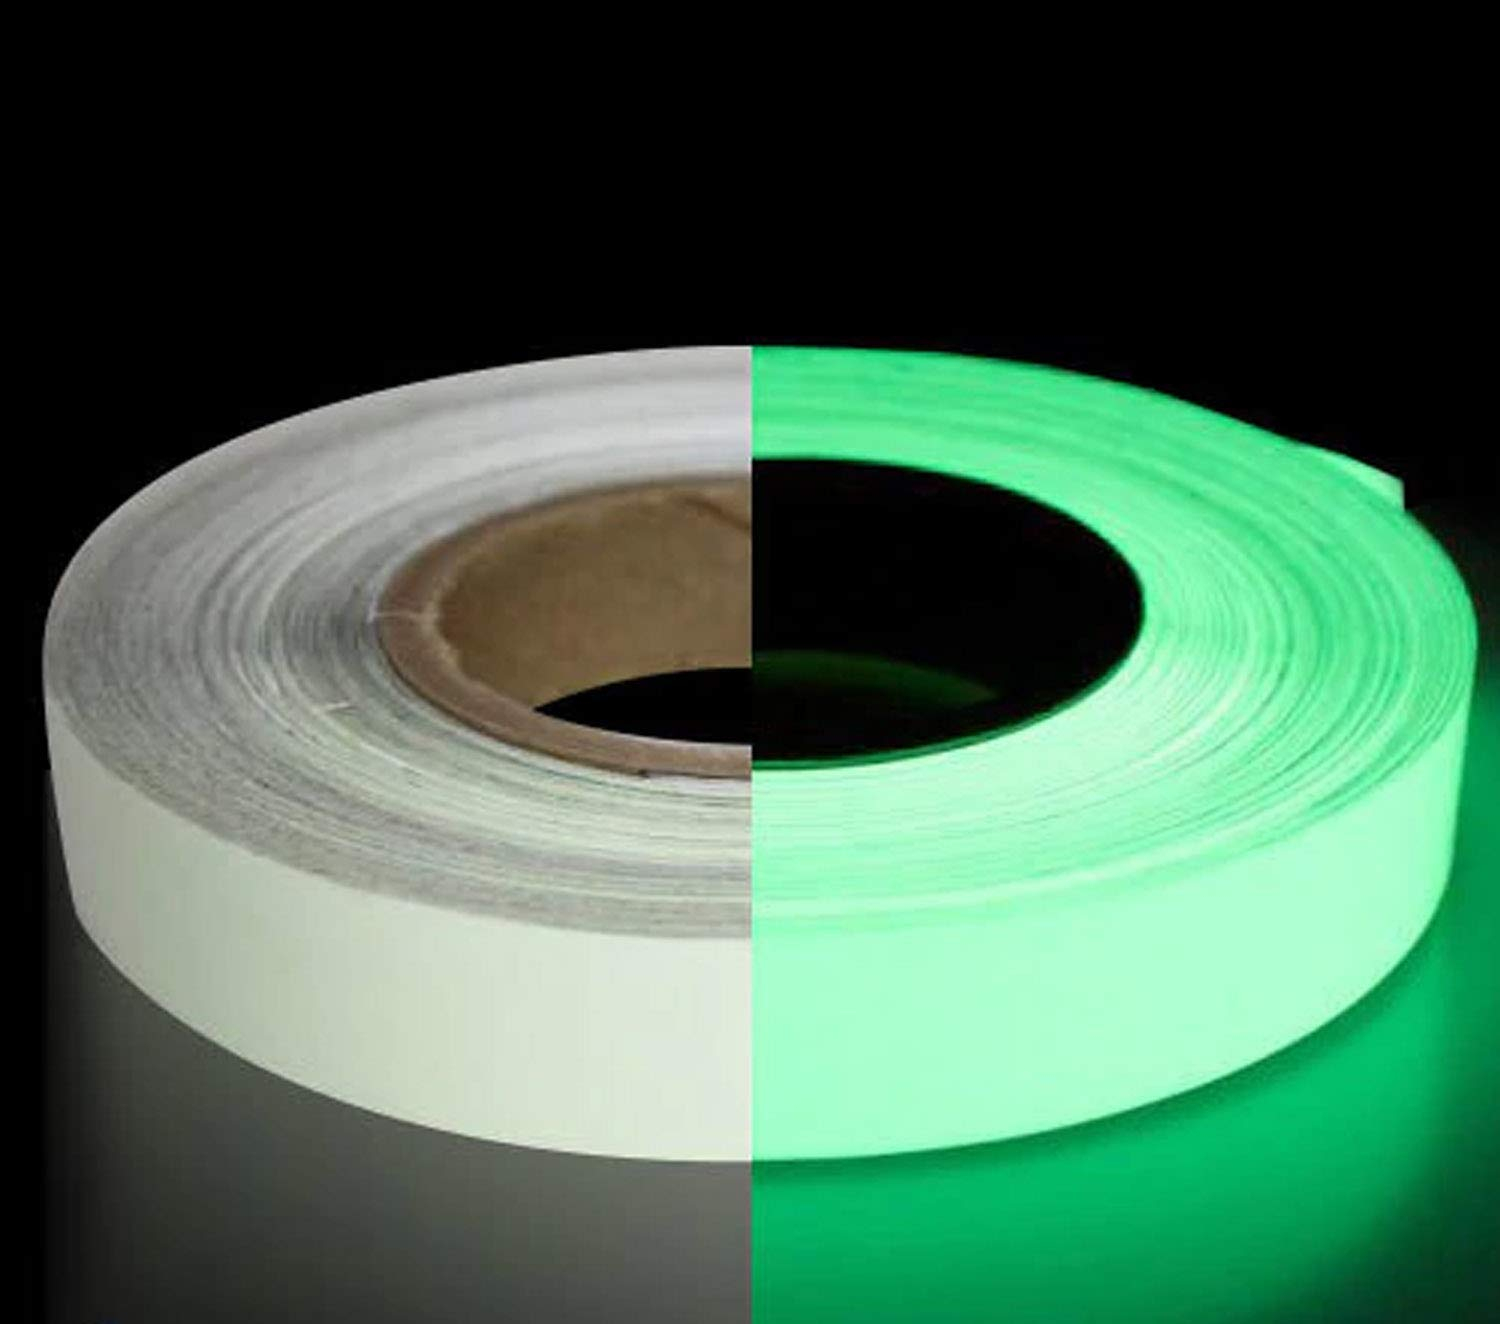 LifeKrafts Glow in The Dark Tape Sticker.(Size: 2cm20 Meter) Photo Luminescent to Mark Stairs, Exit Sign, Steps. Safety Tape.